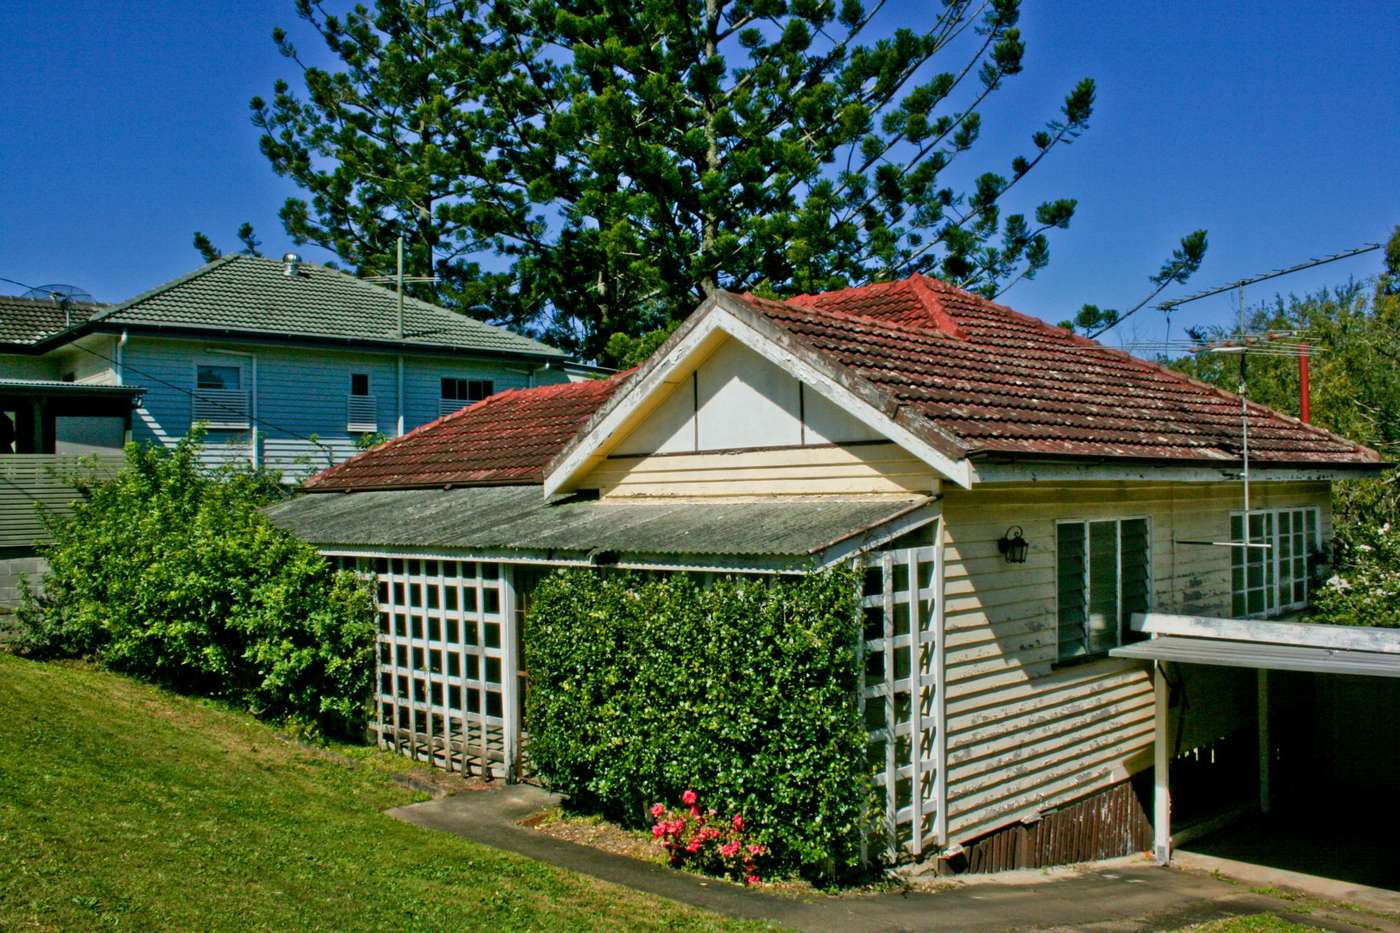 Main view of Homely house listing, 66 Gladstone Street, Indooroopilly, QLD 4068